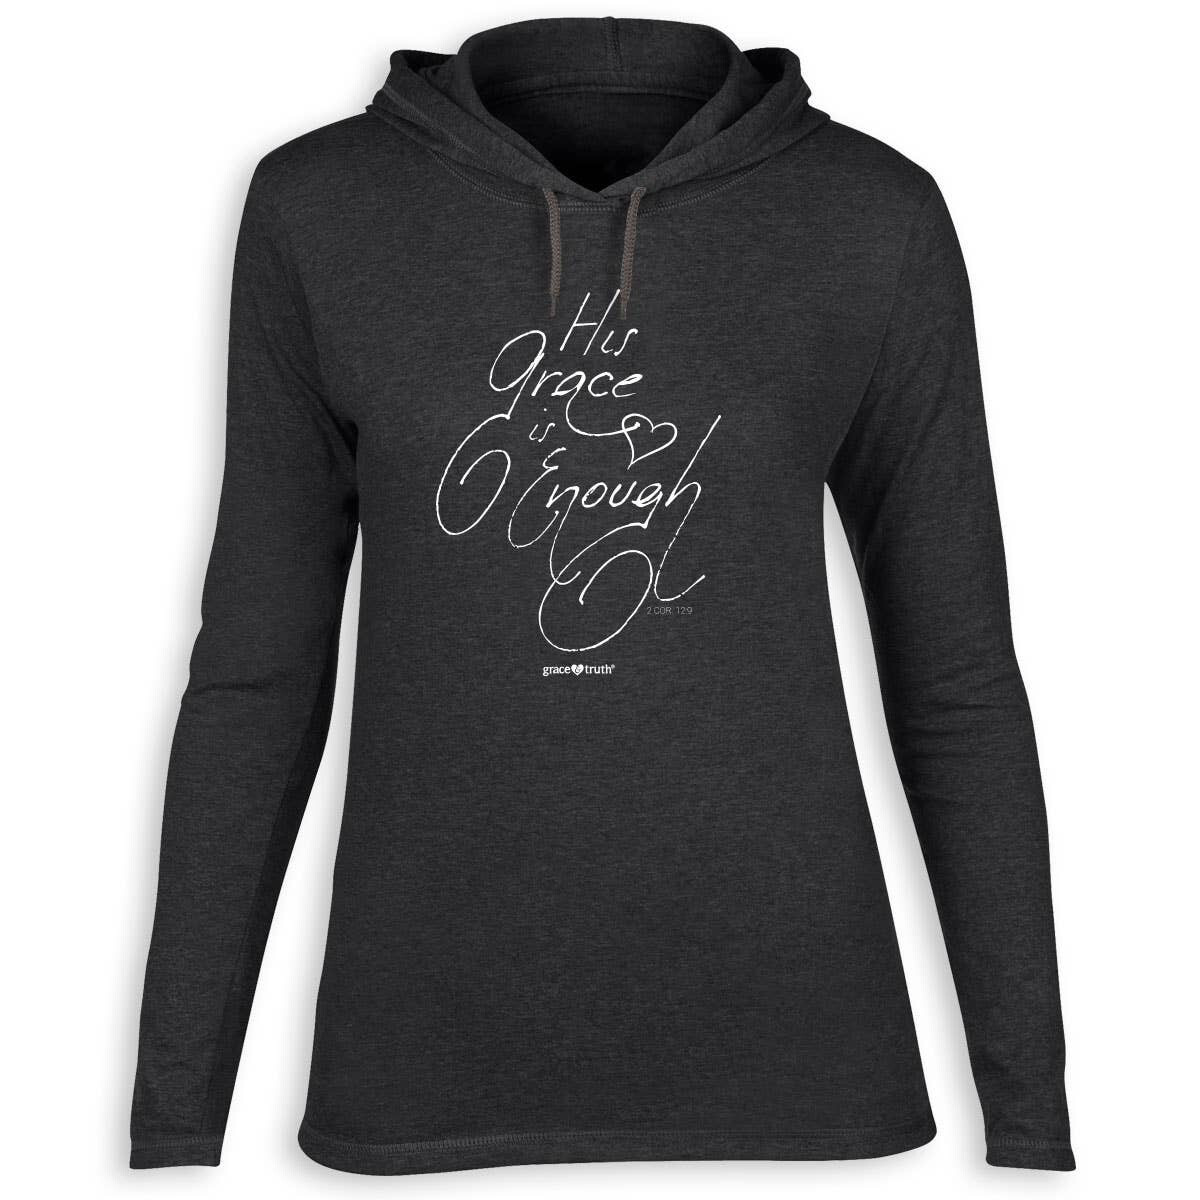 His Grace Is Enough, Hooded T-shirt, LRG